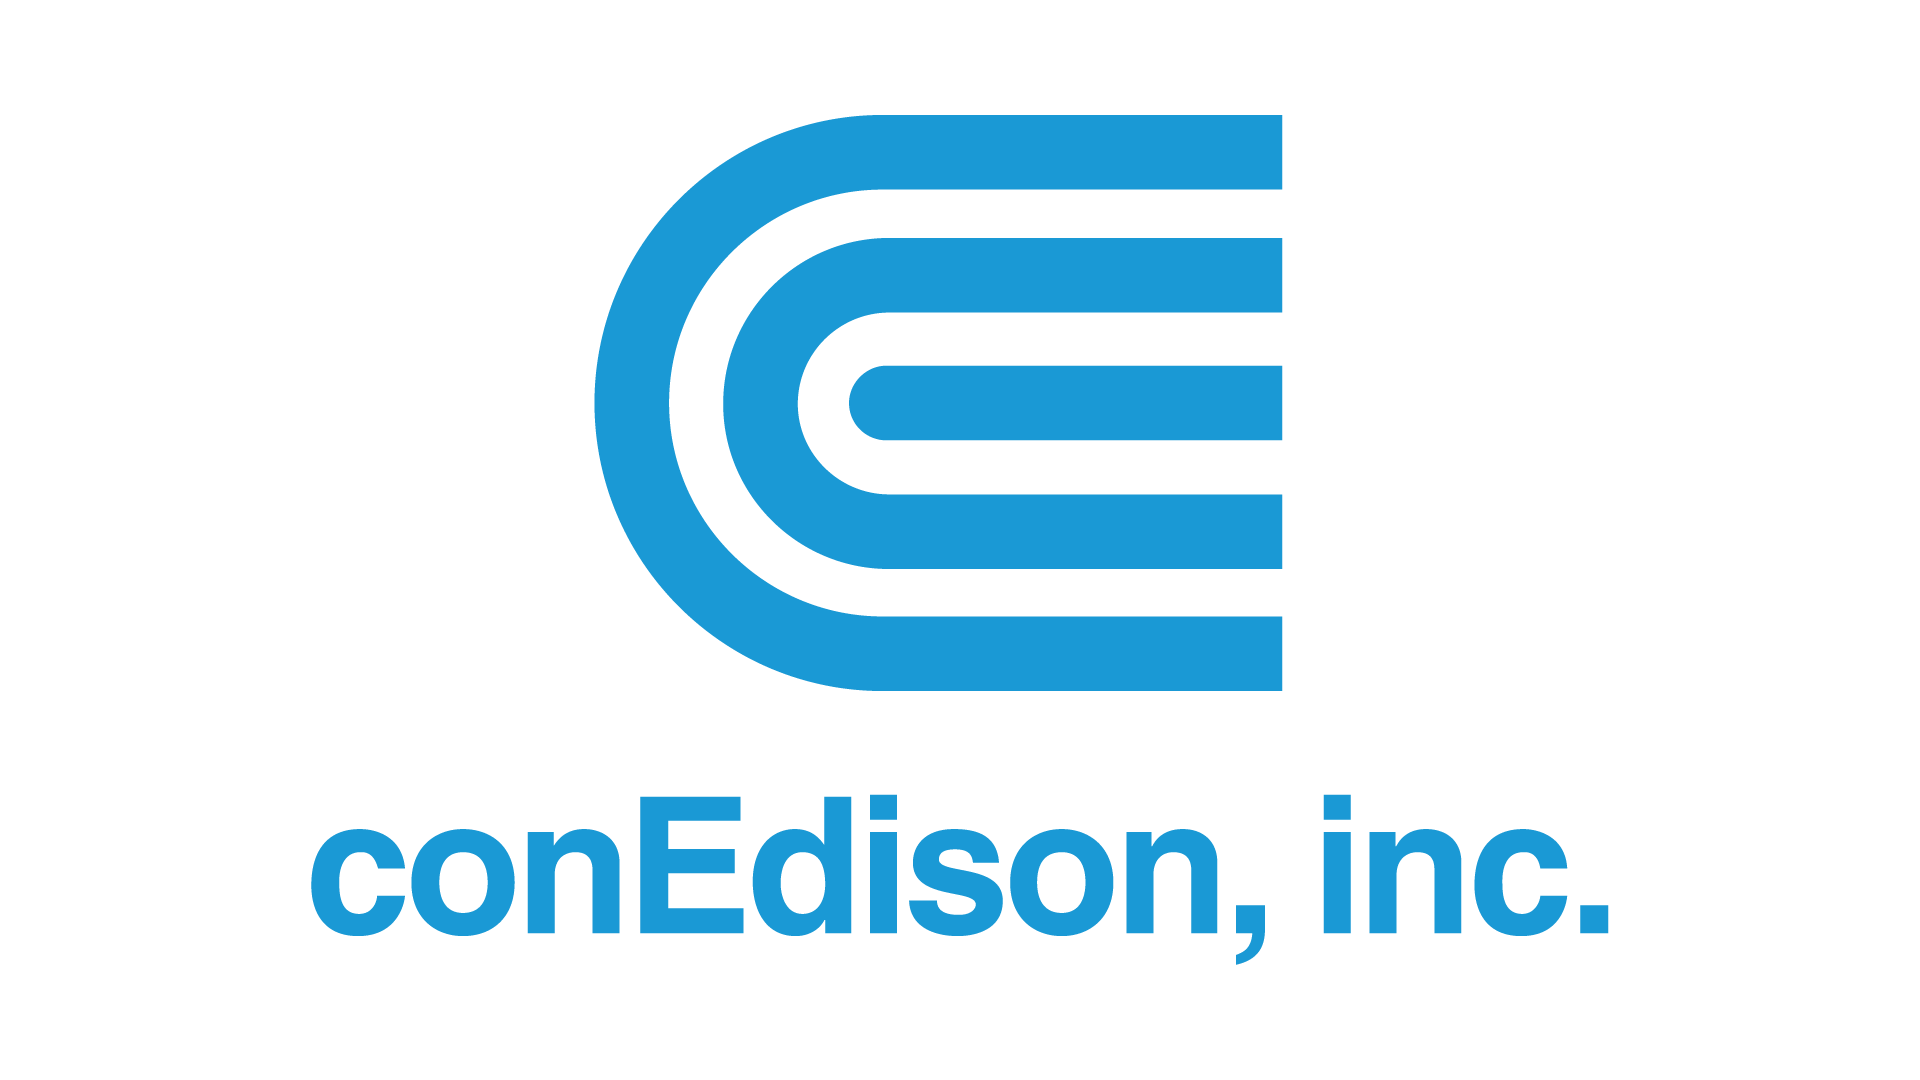 ConED_logo.png